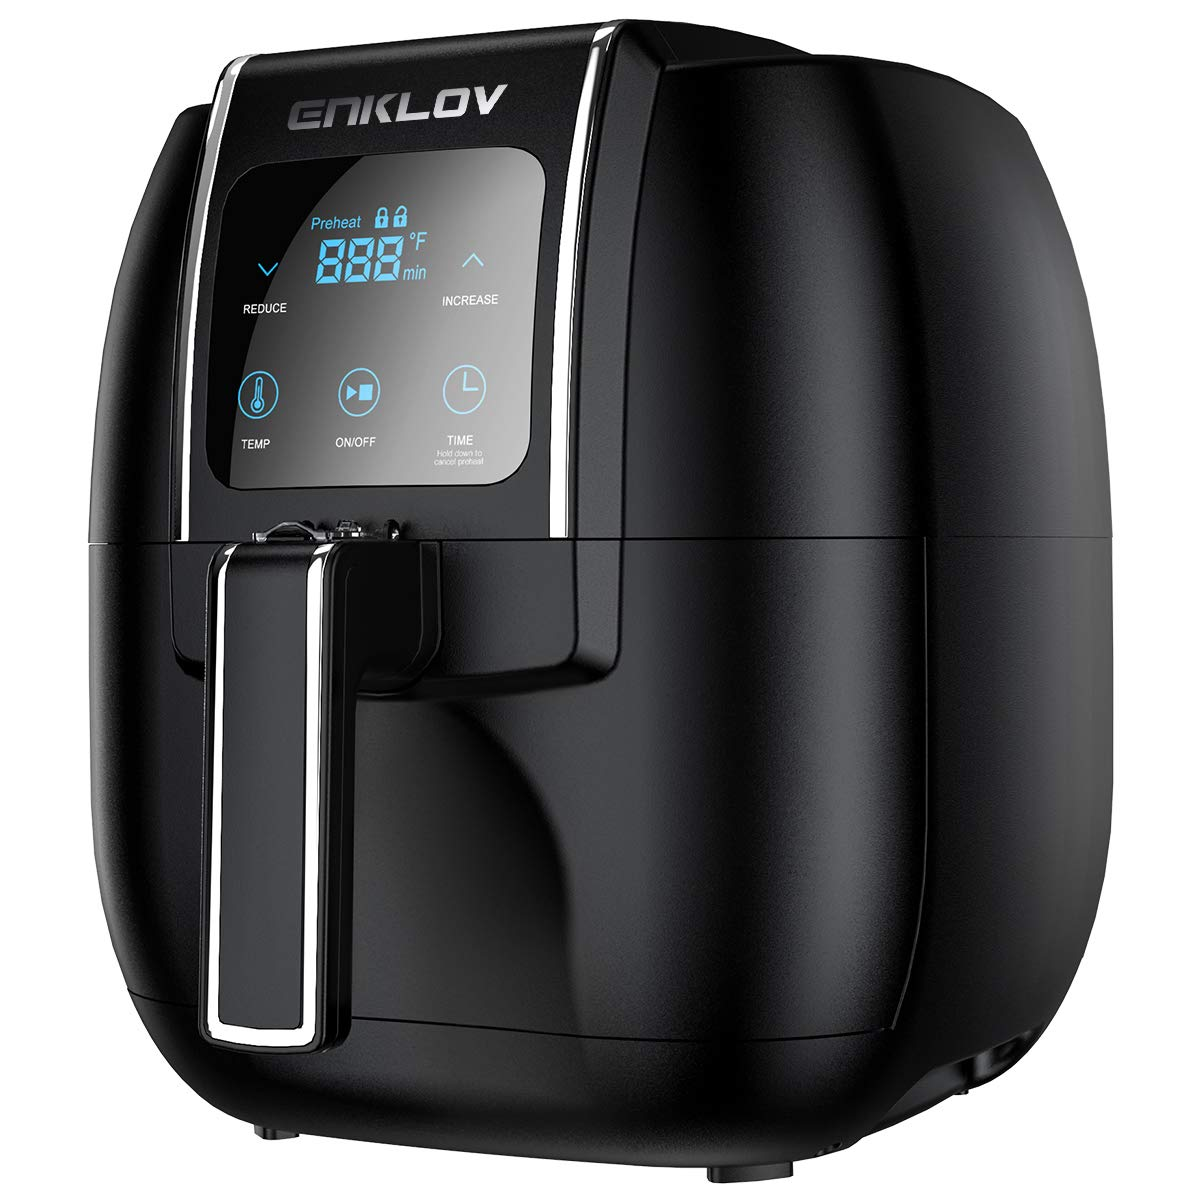 ENKLOV Air Fryer 5.5QT XL (Recipe Guide Included) ENKLOV 12 in 1 Digital Display Control, Oil Less Hot Airfryer Oven, Fast 1350W Electric Power Air Cooker,Easy Clean